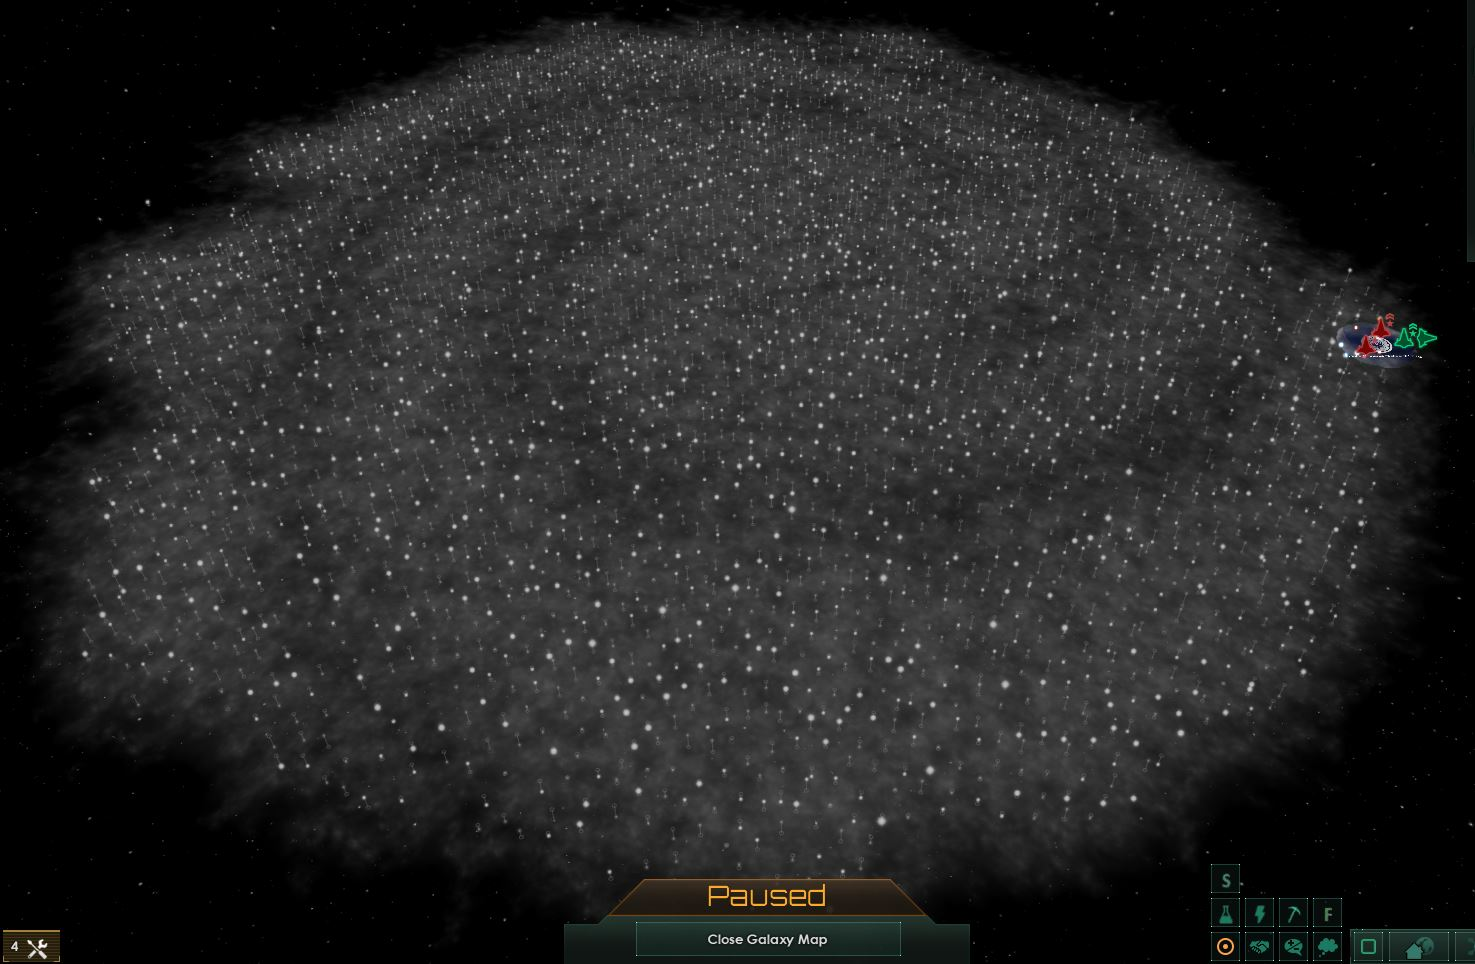 Steam Workshop :: Galaxy Maps on continents map, hotspot map, lightning map, asteroid map, google map, universe map, local supercluster map, astronomy map, sun map, spectrum map, solar system map, supreme map, science map, custom map, milky way map, world map, constellation map, venus map, usa map, classic map,